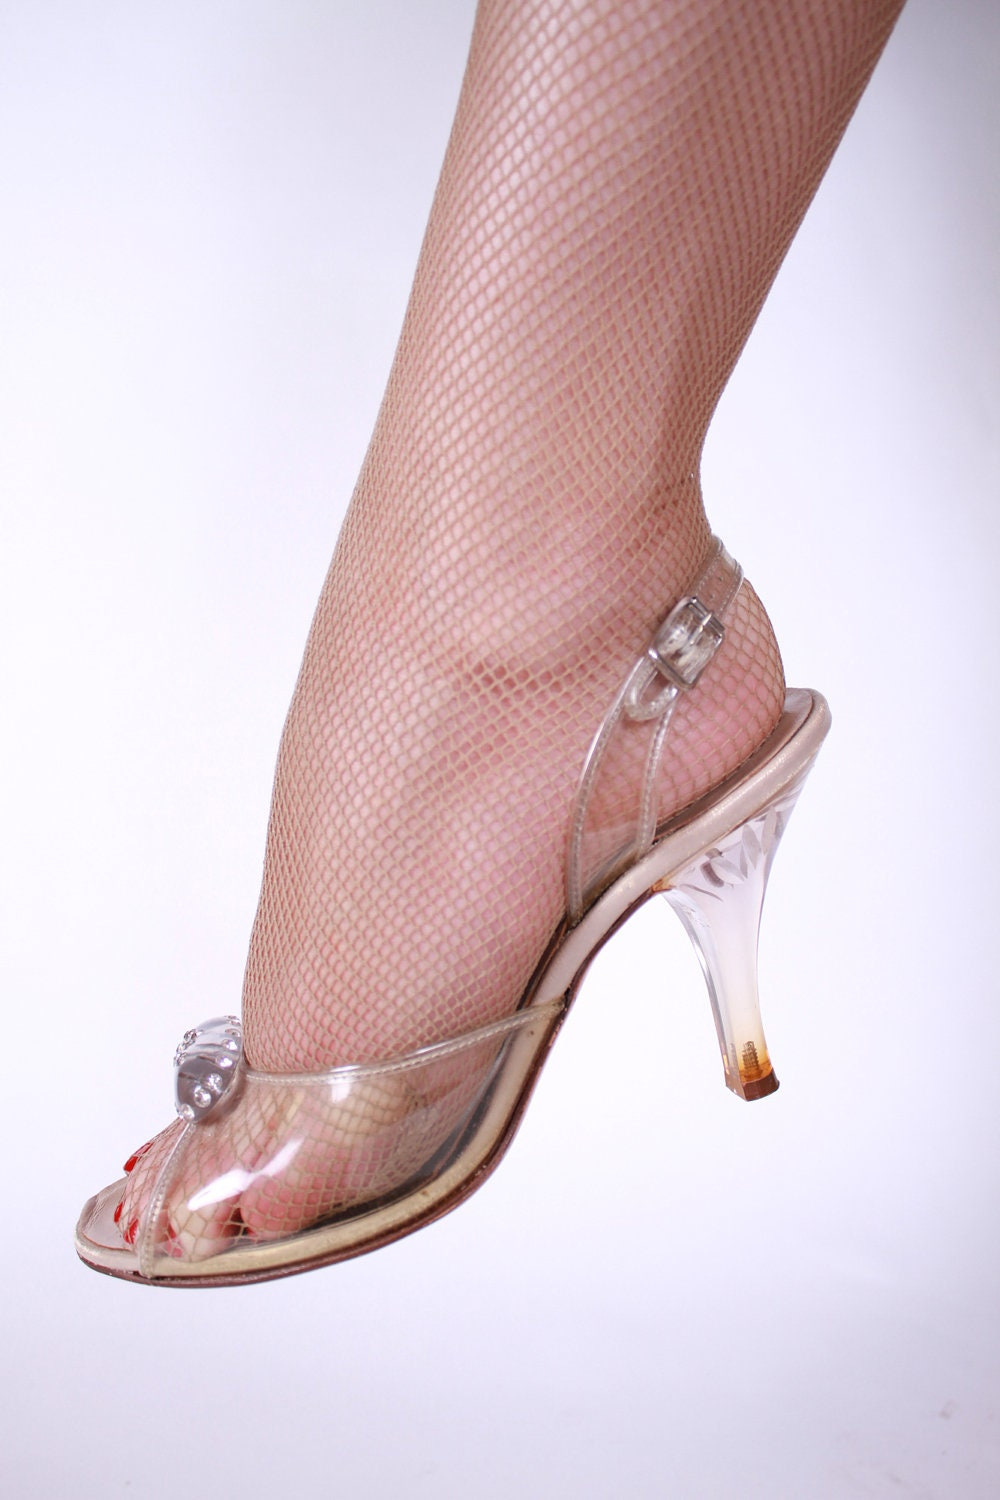 Vintage 1950s Clear Lucite Heel Wedding Shoes Size 5 5b